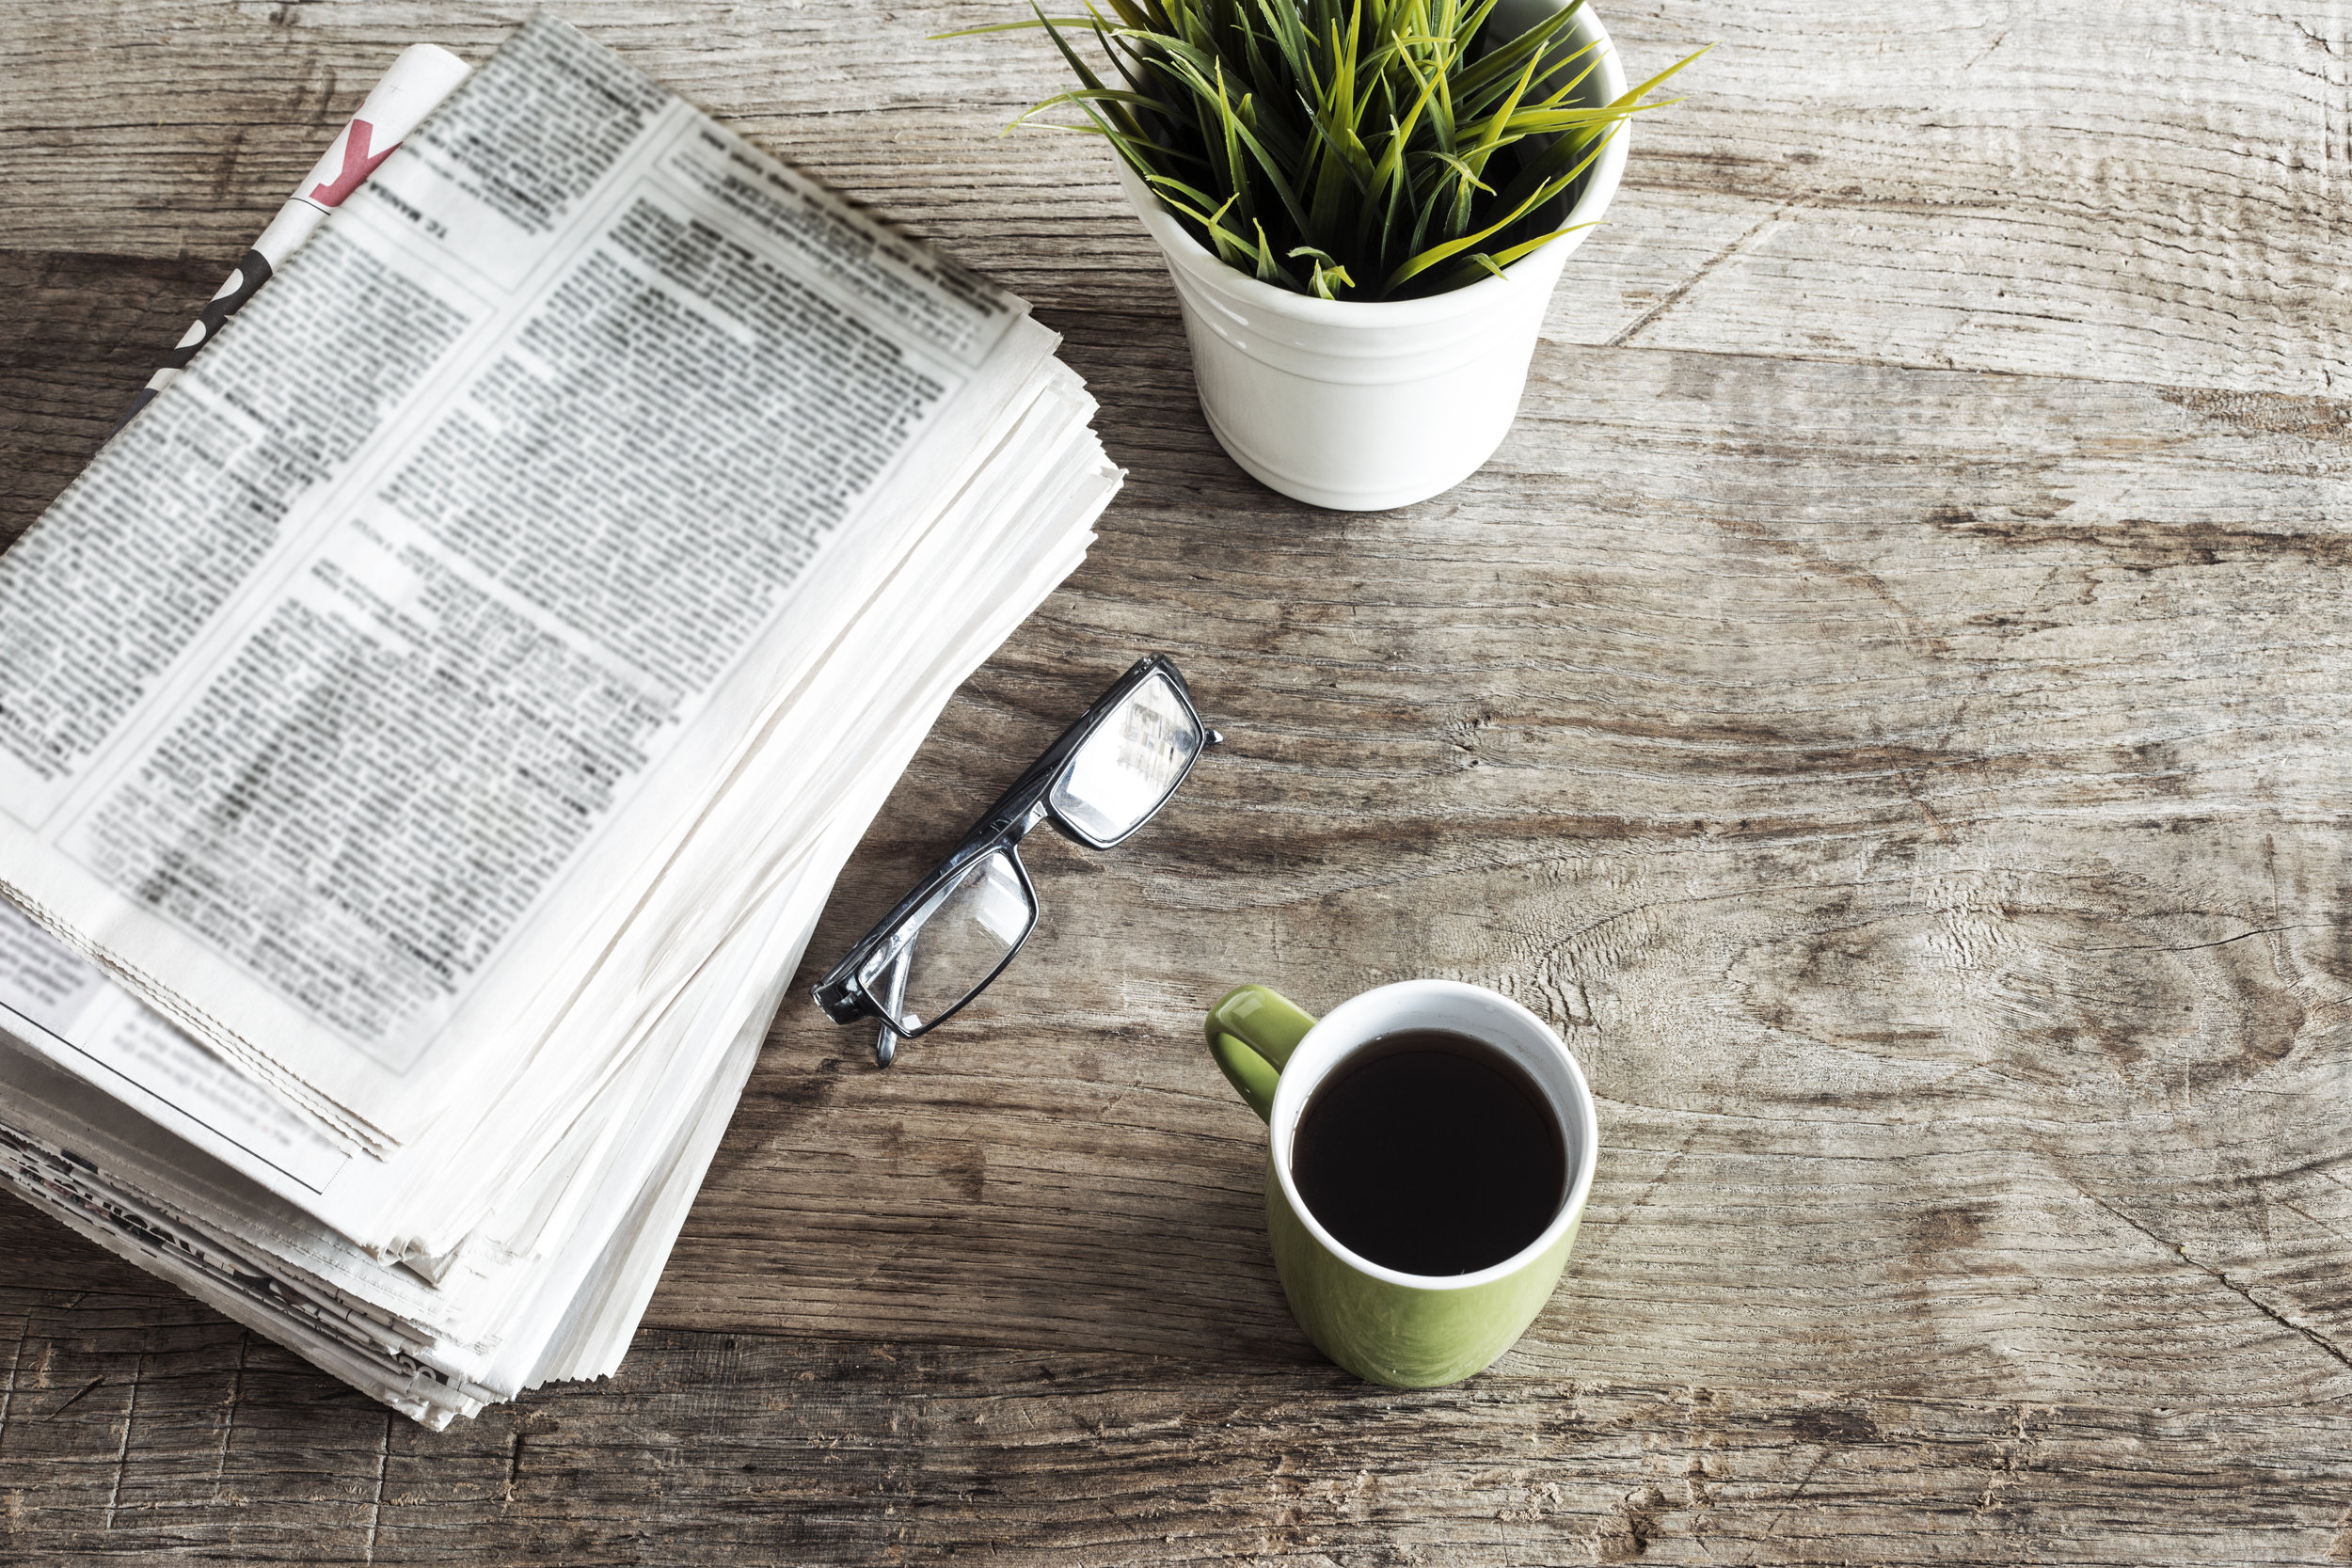 Coffee and a newspaper